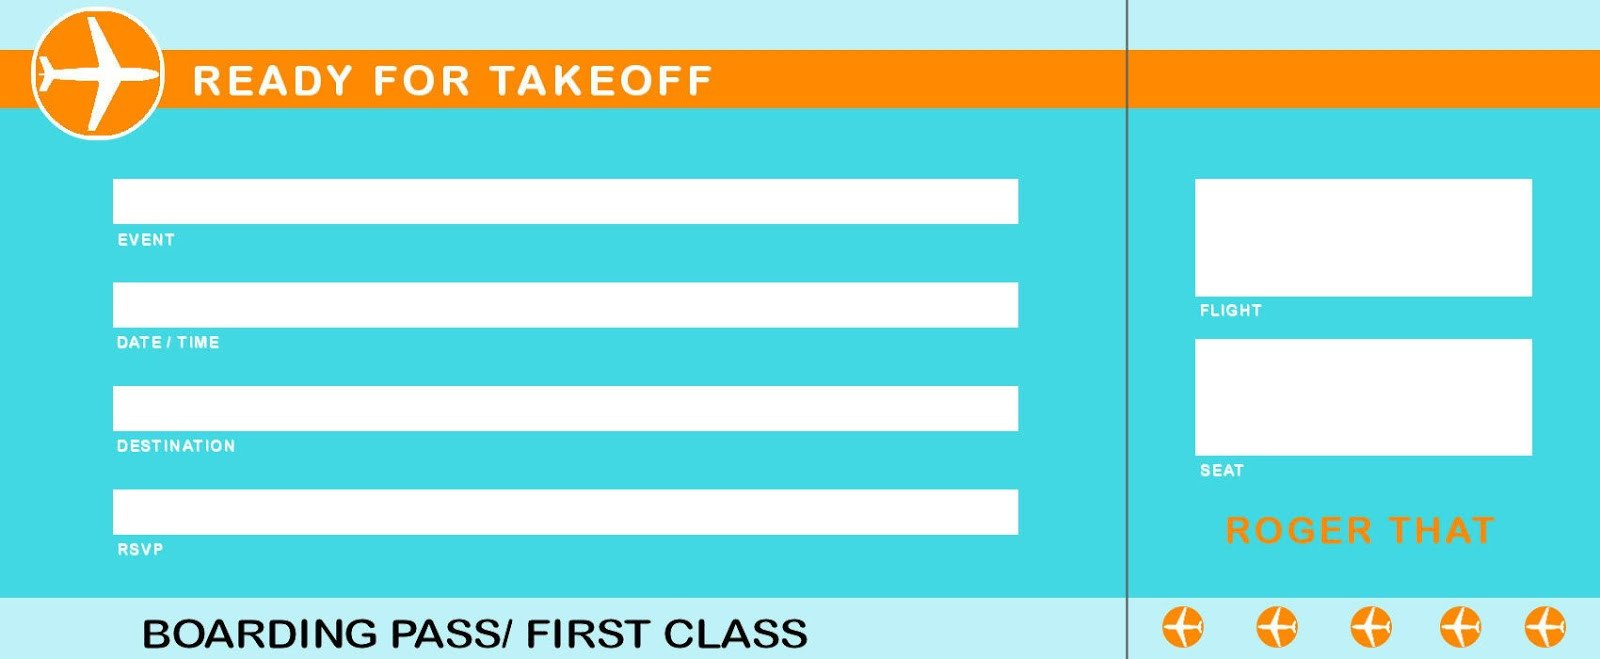 Fake Boarding Pass Template 001 Template Ideas Fake Airline Ticket Imposing Delta